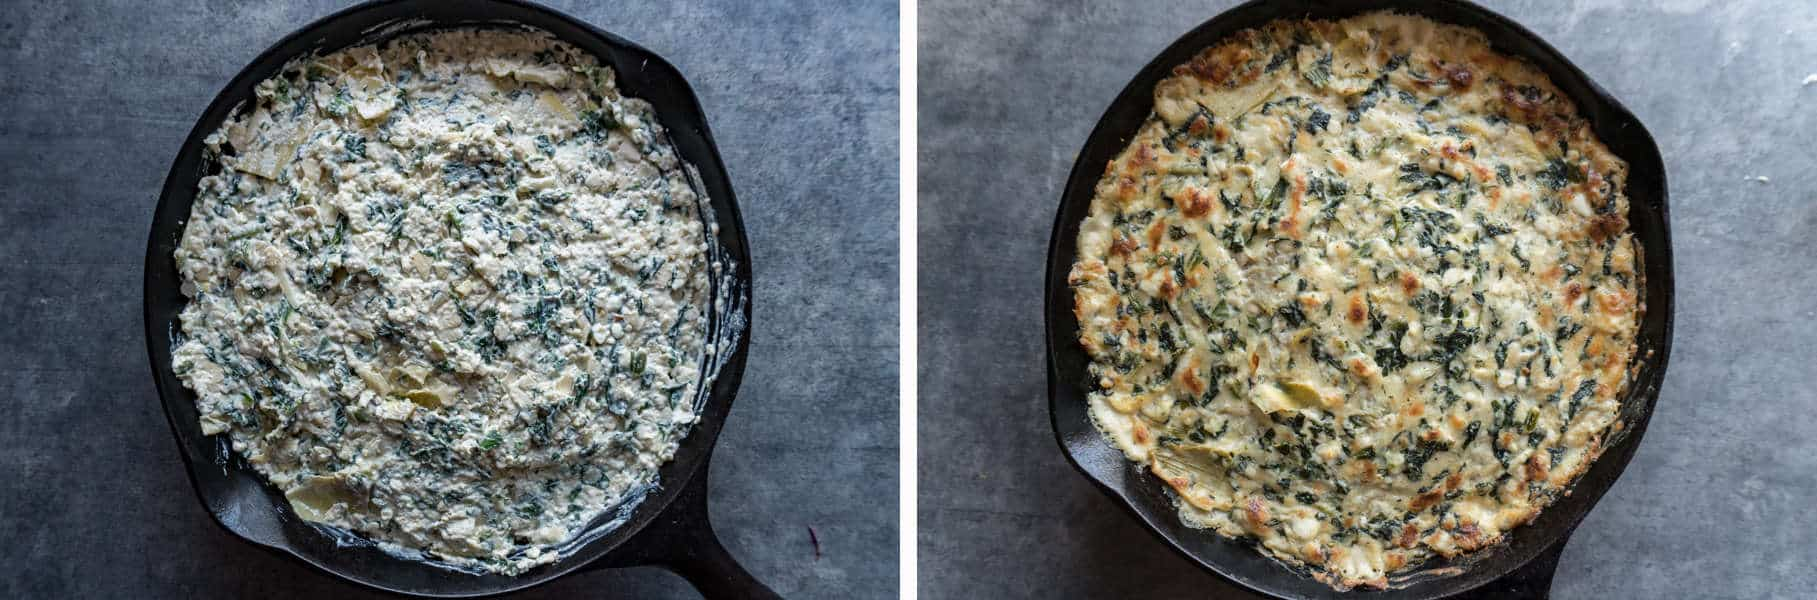 Spinach Artichoke Dip step 4 and step 5